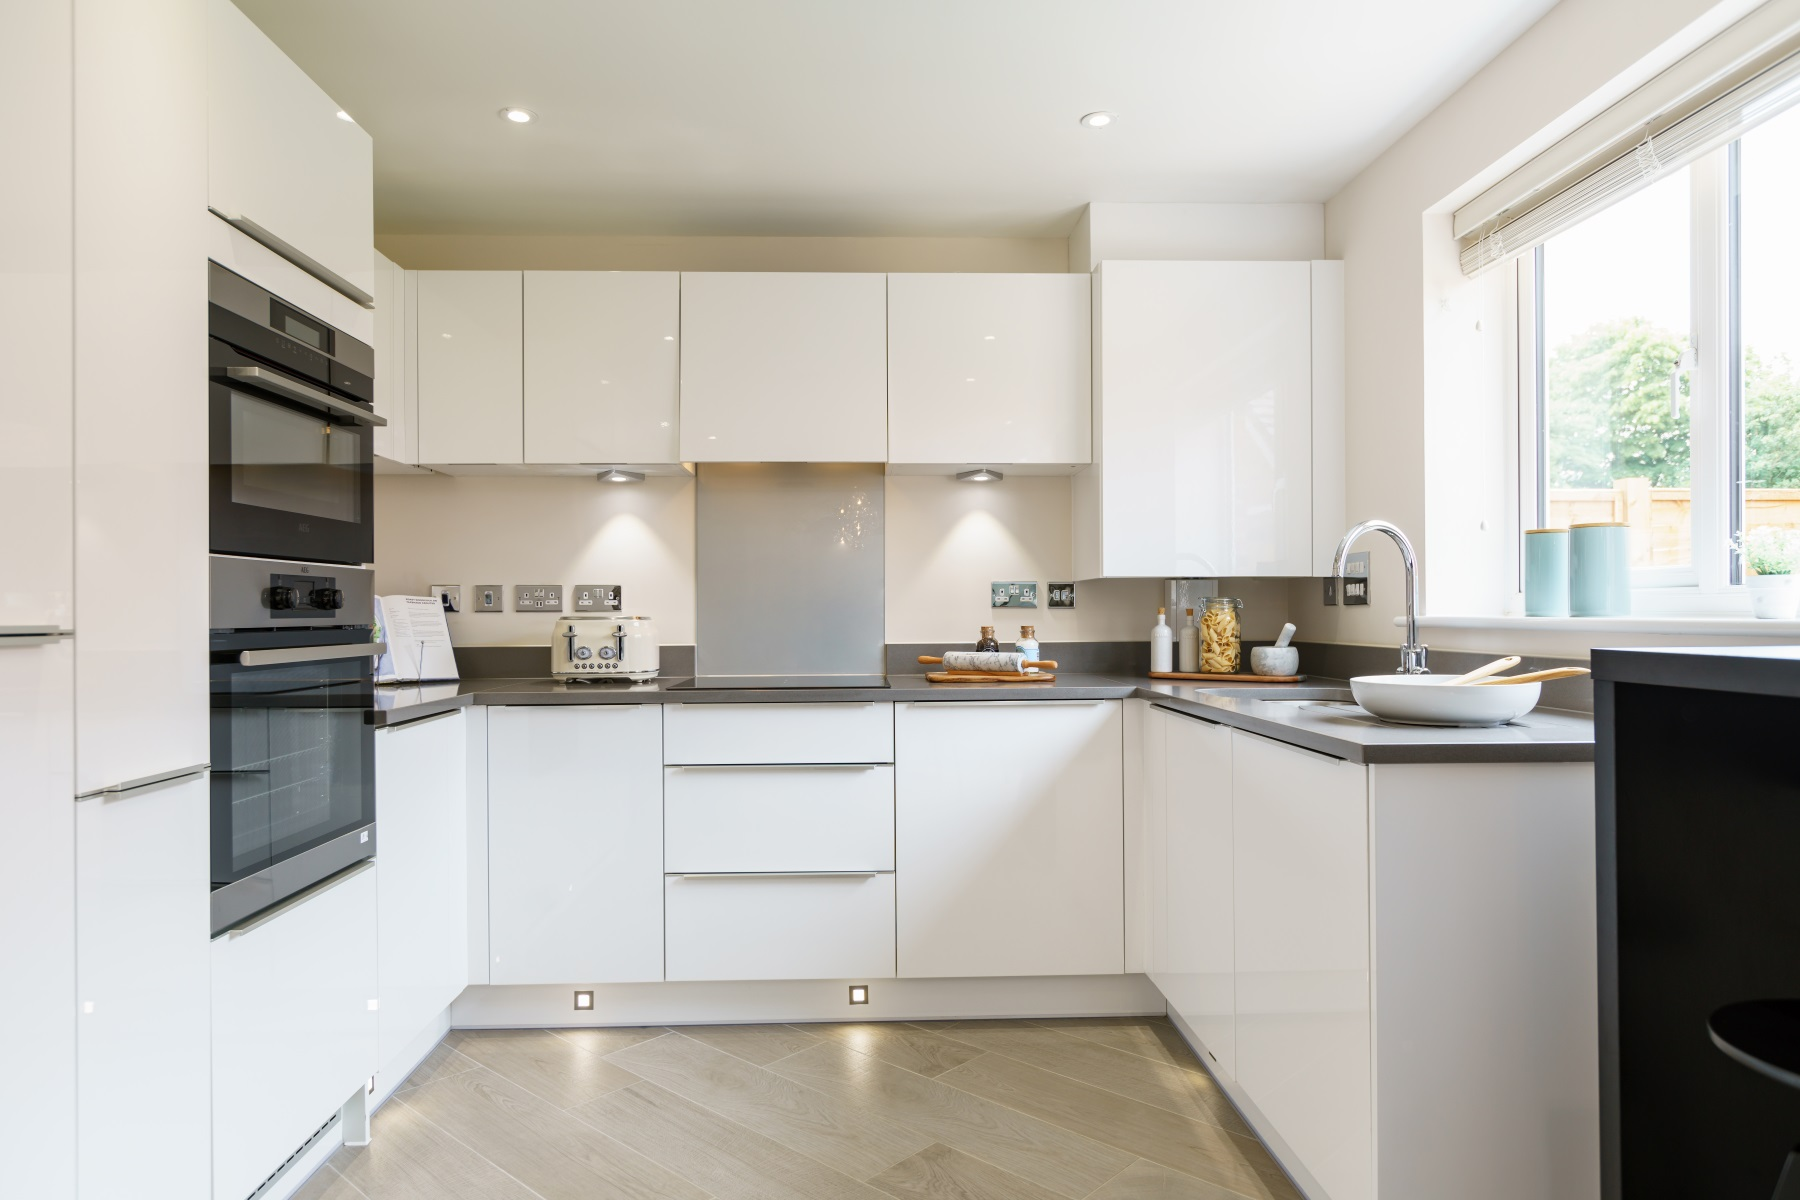 TW Exeter - Buckingham Heights - Huxford example kitchen